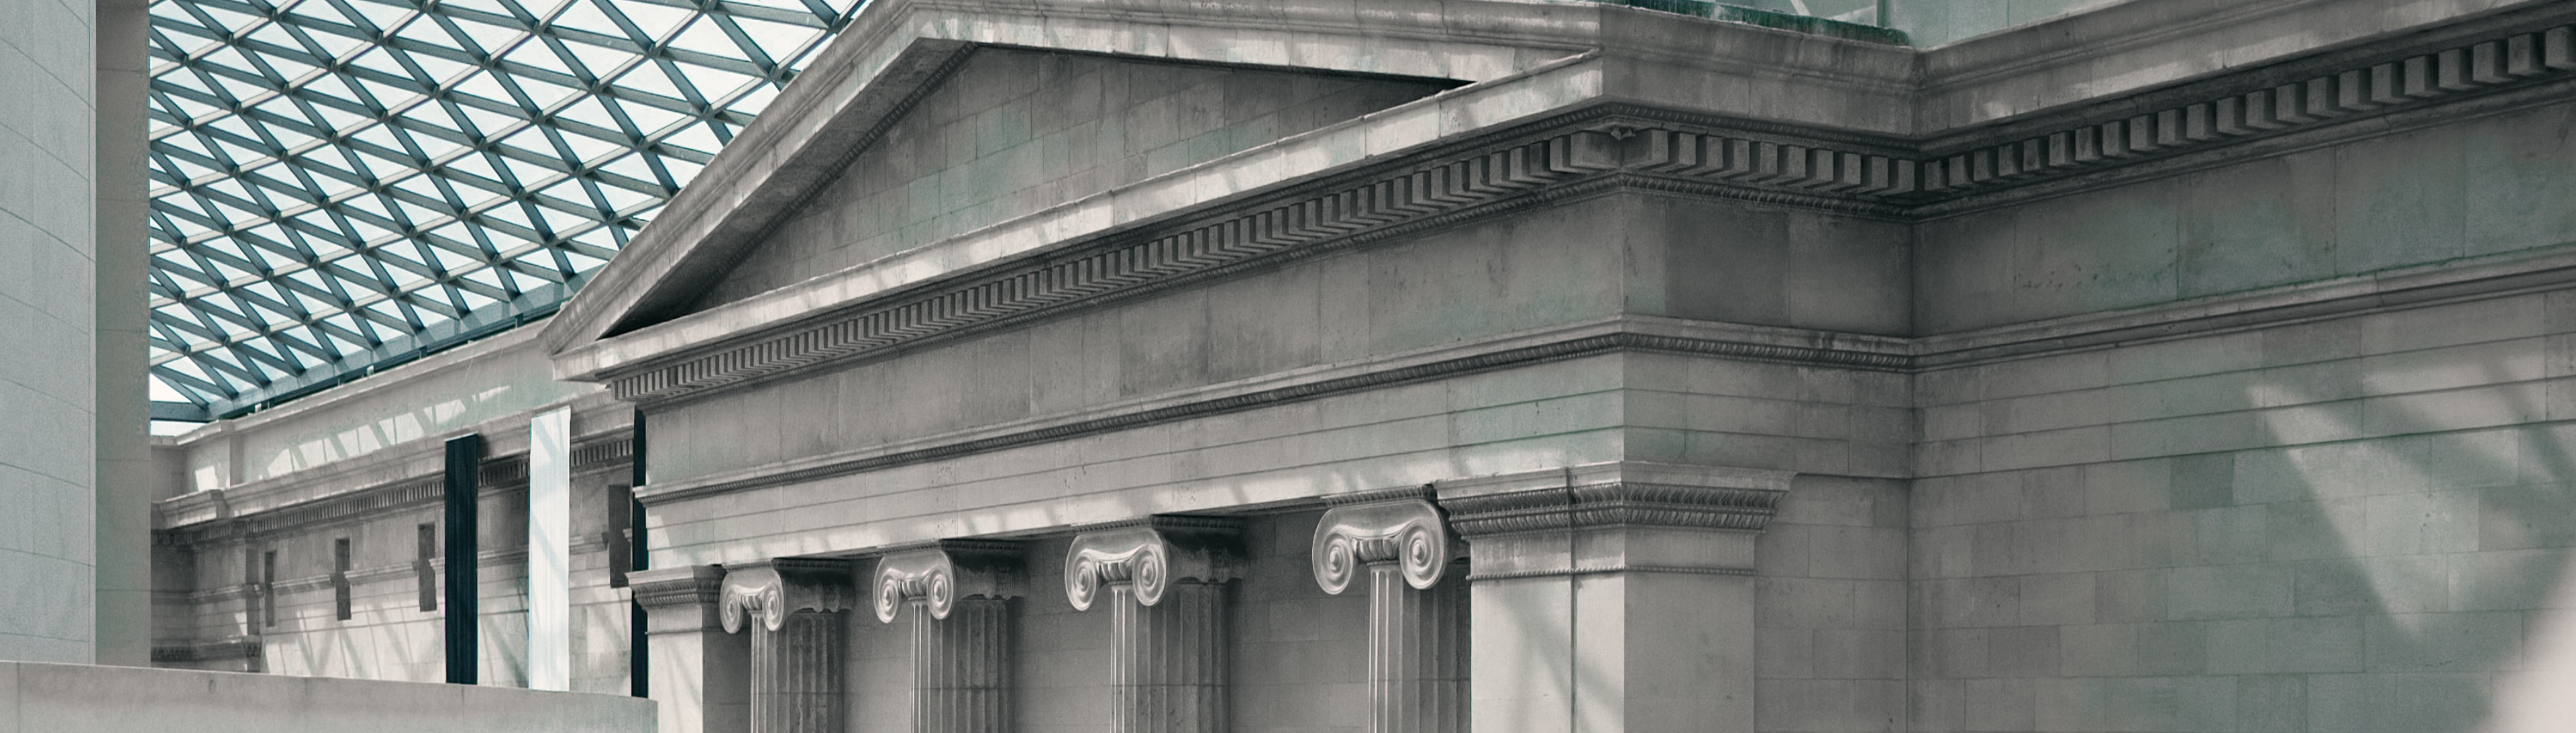 Education institution with columns